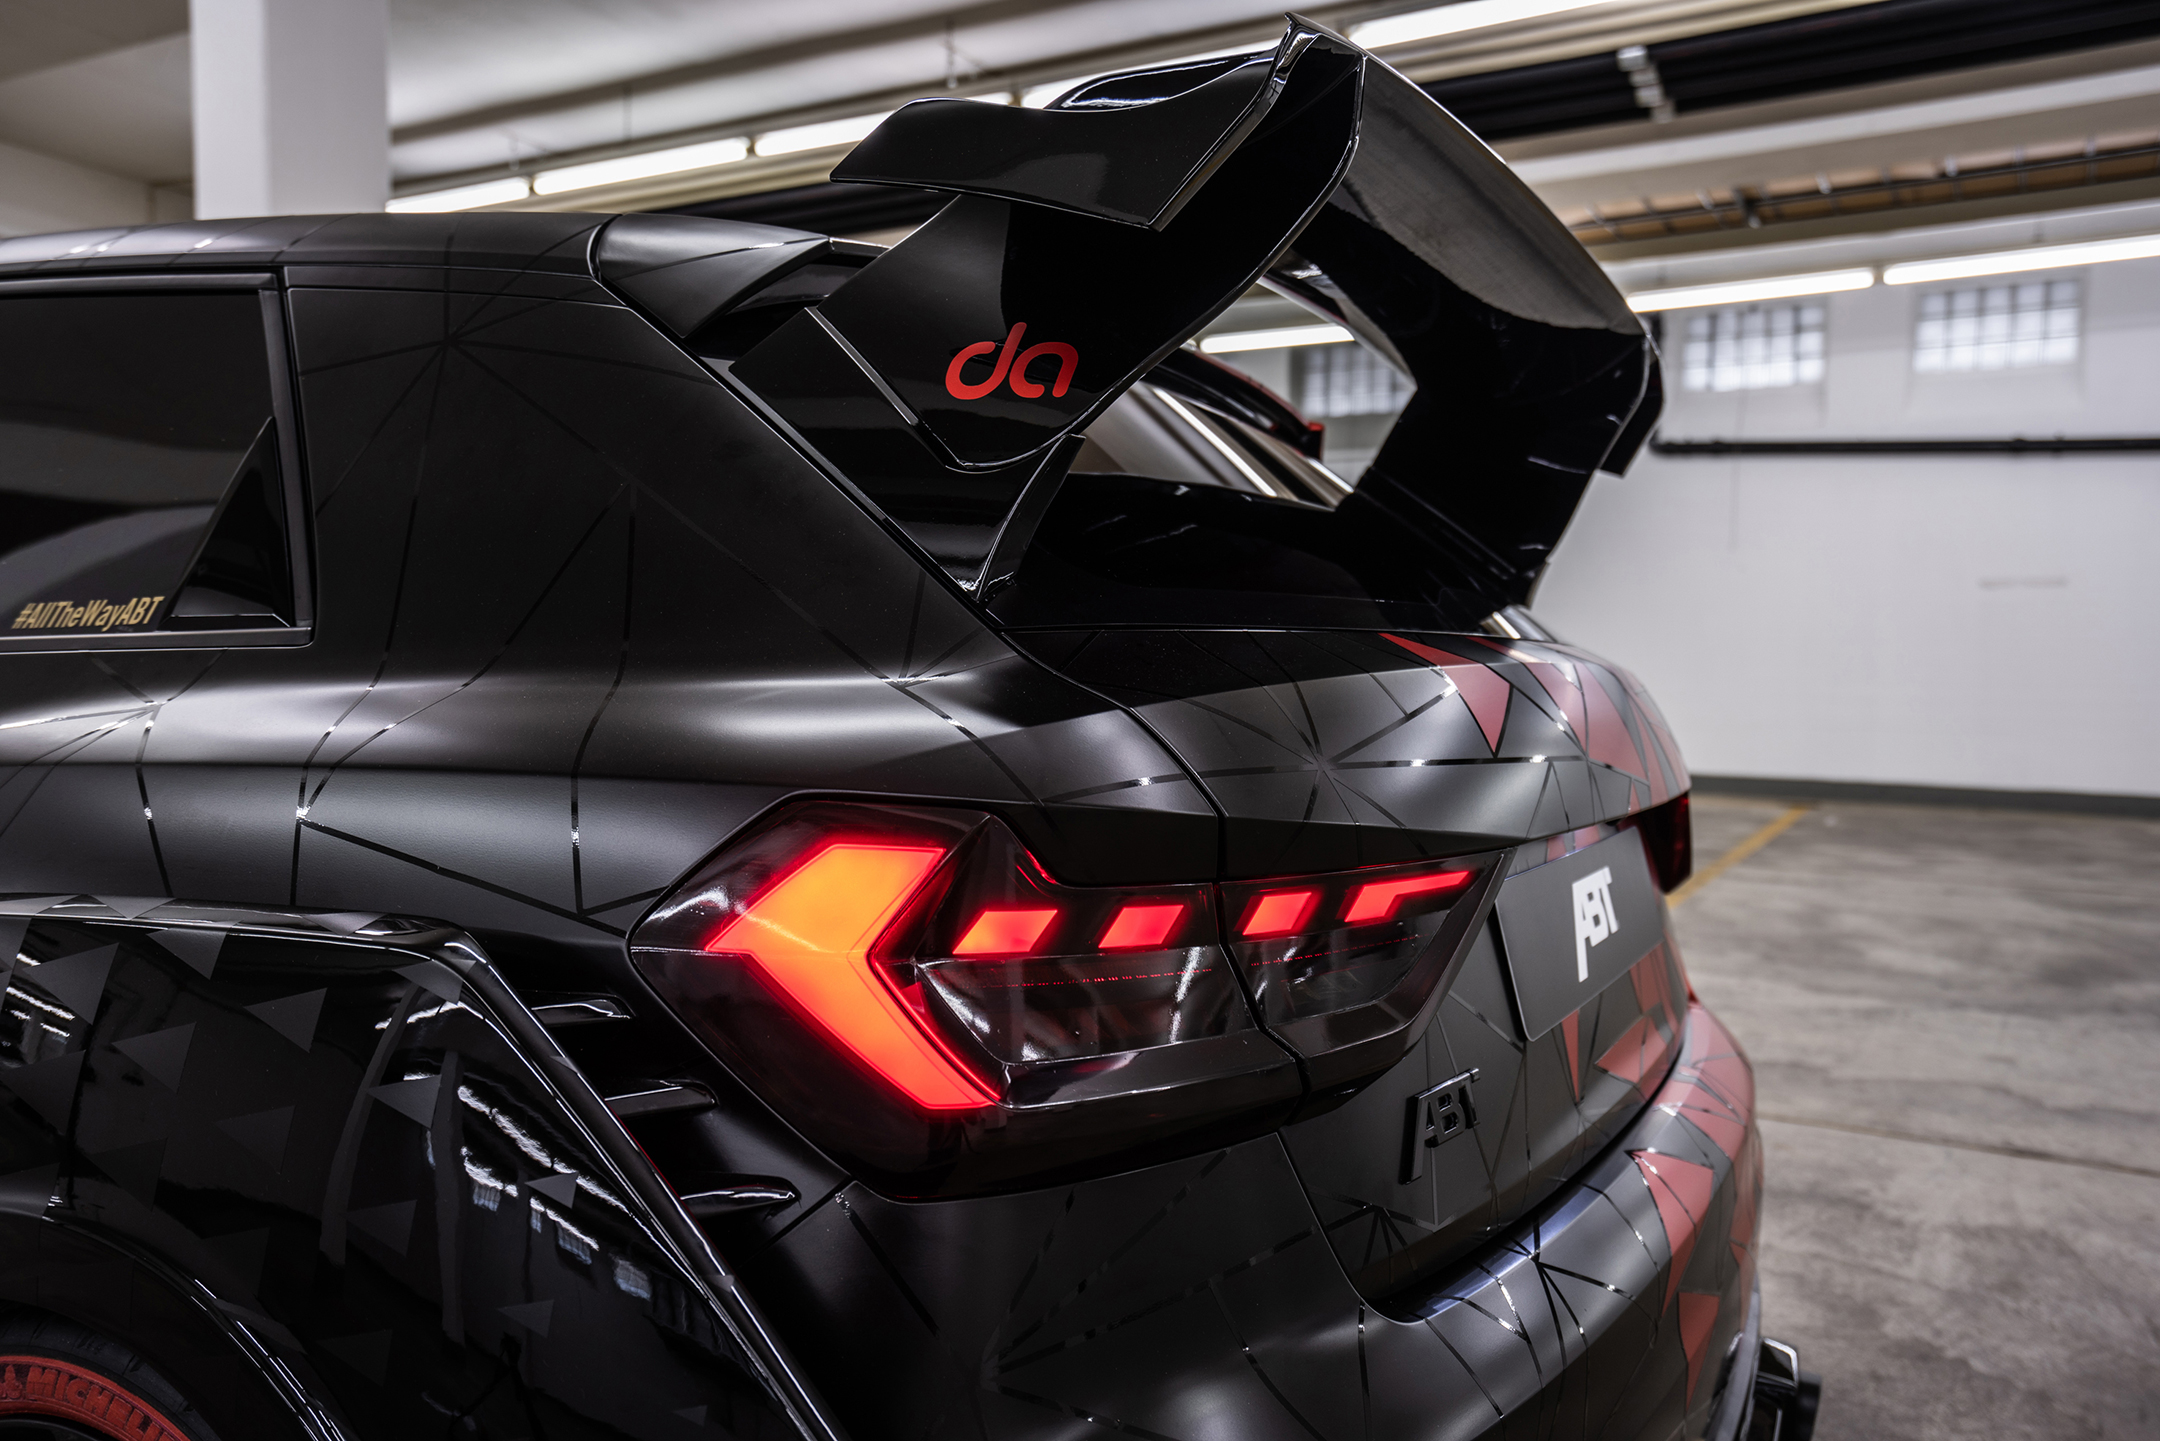 ABT Audi A1 1of1 - 2019 - rear wing / aileron